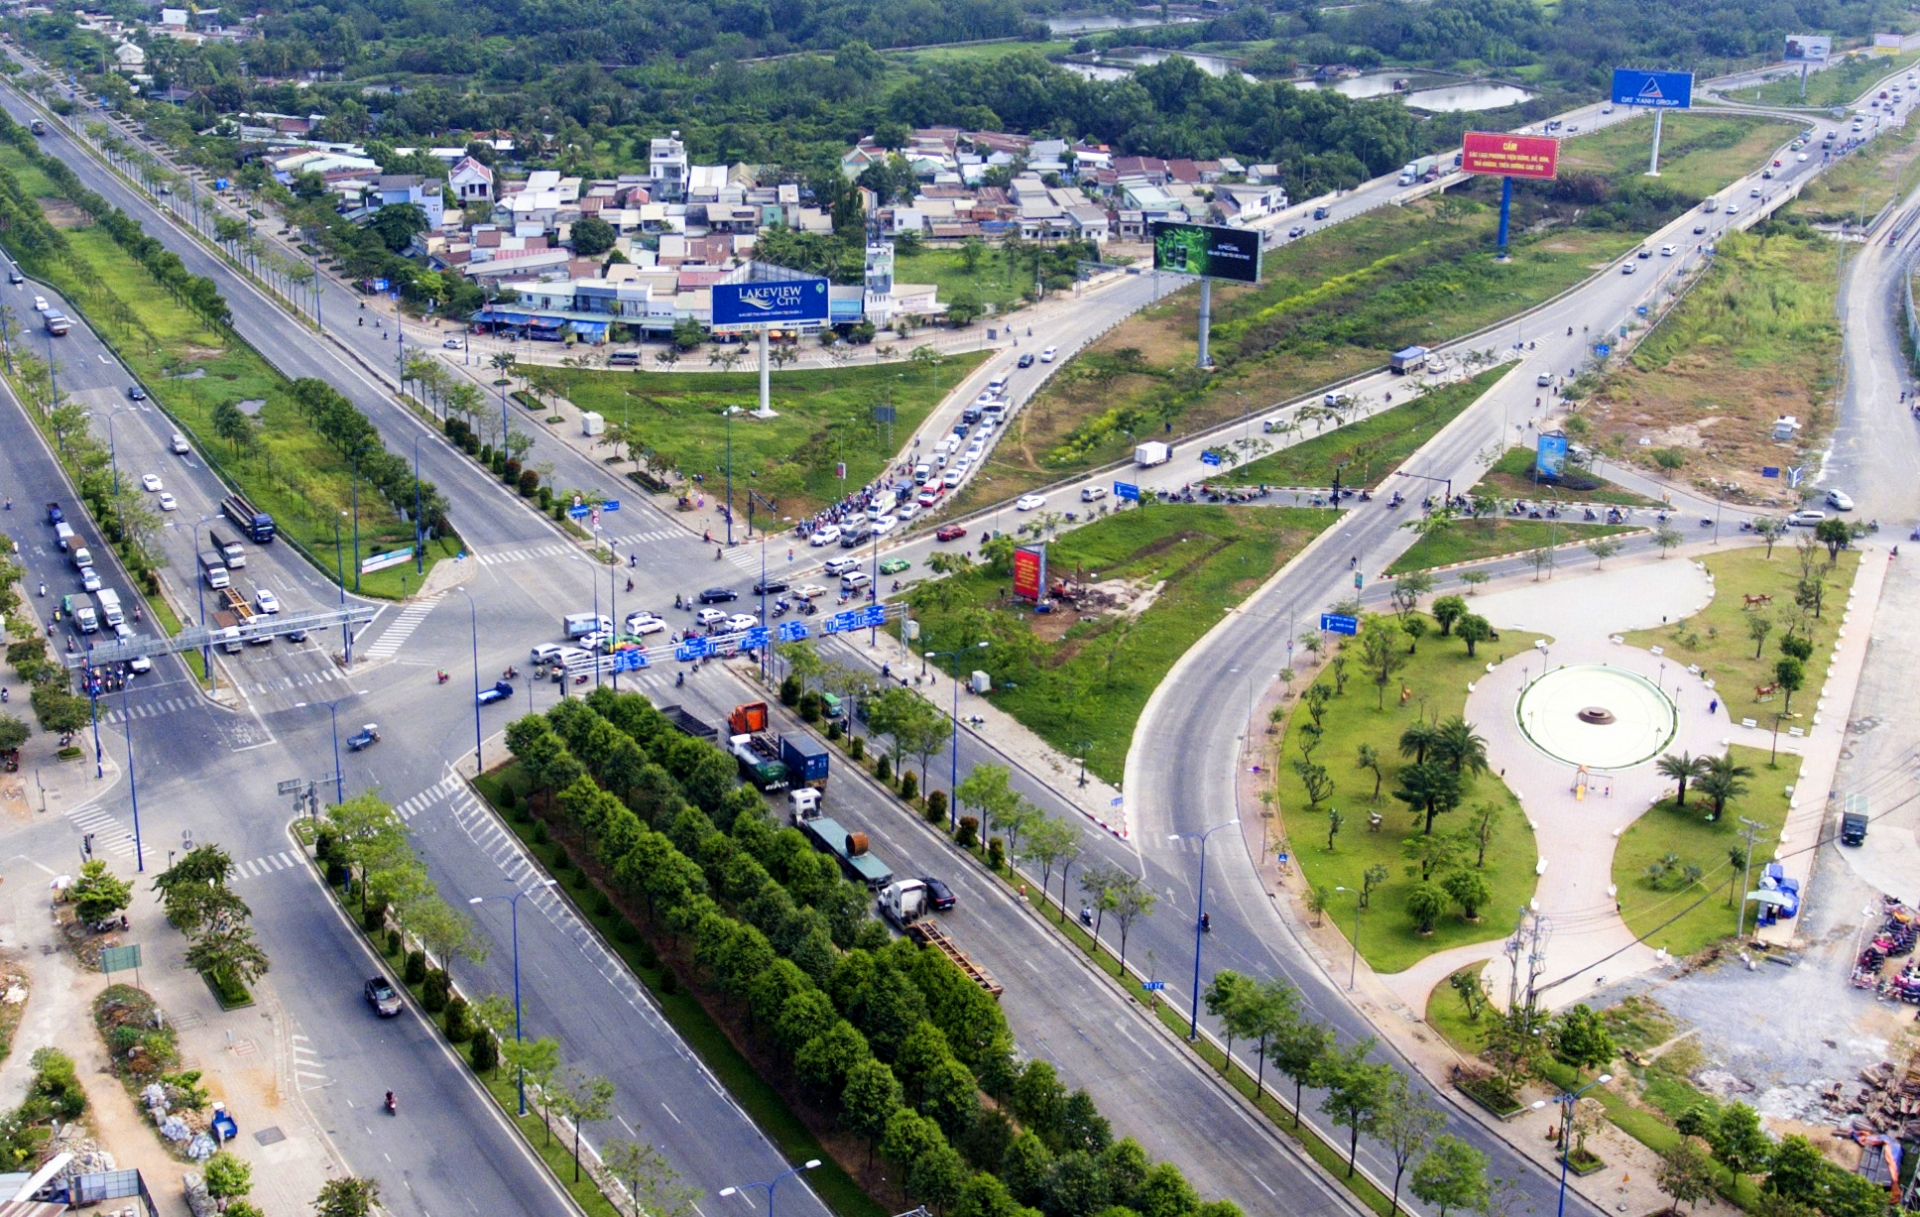 Haiphong looks to implement new major projects